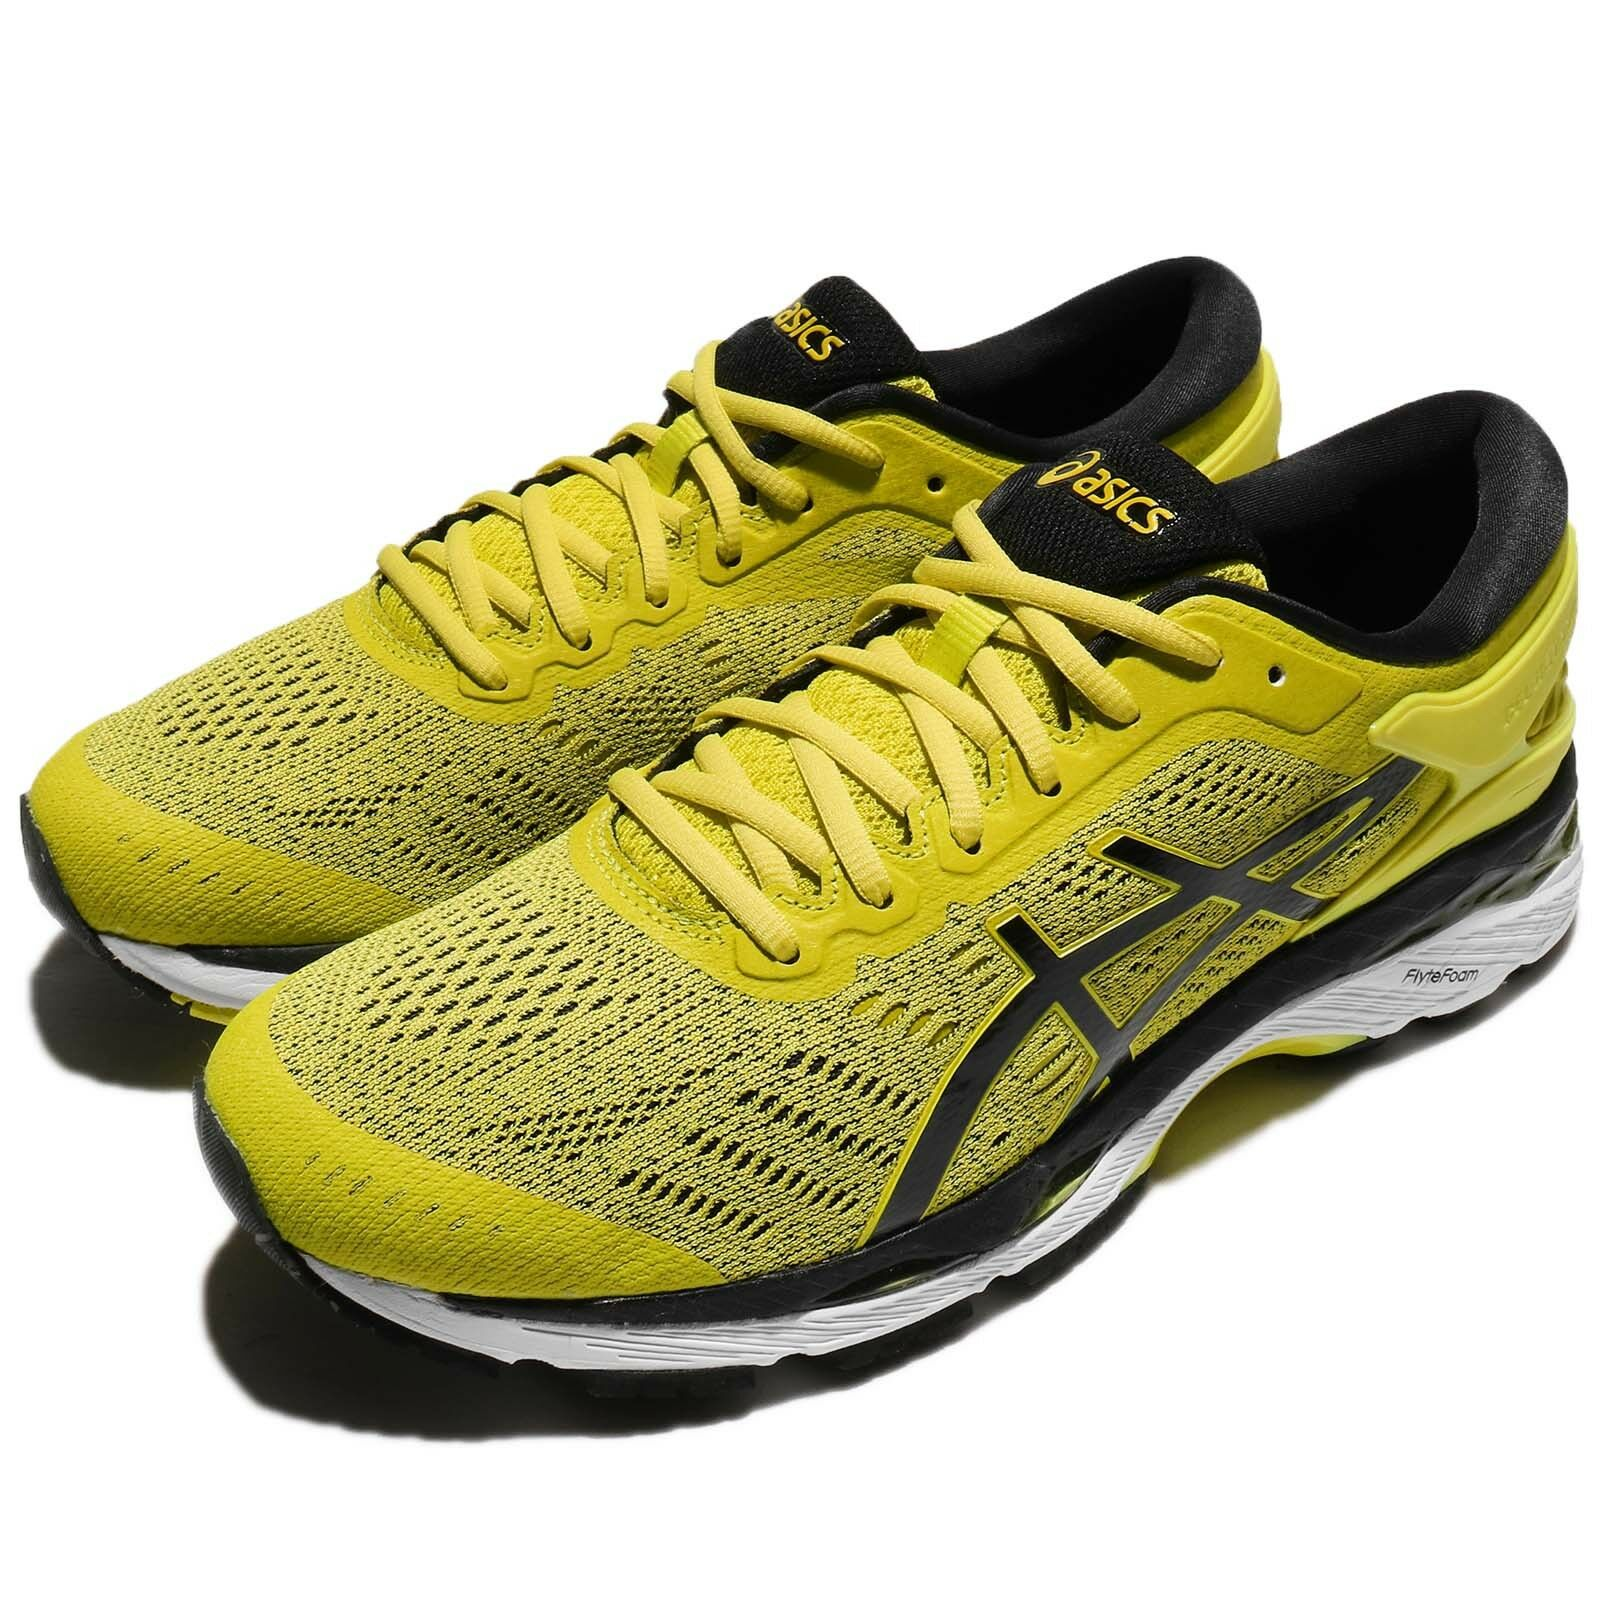 Asics Gel-Kayano 24 Sulphur Yellow Black Men Running Shoes Trainers T749N-8990